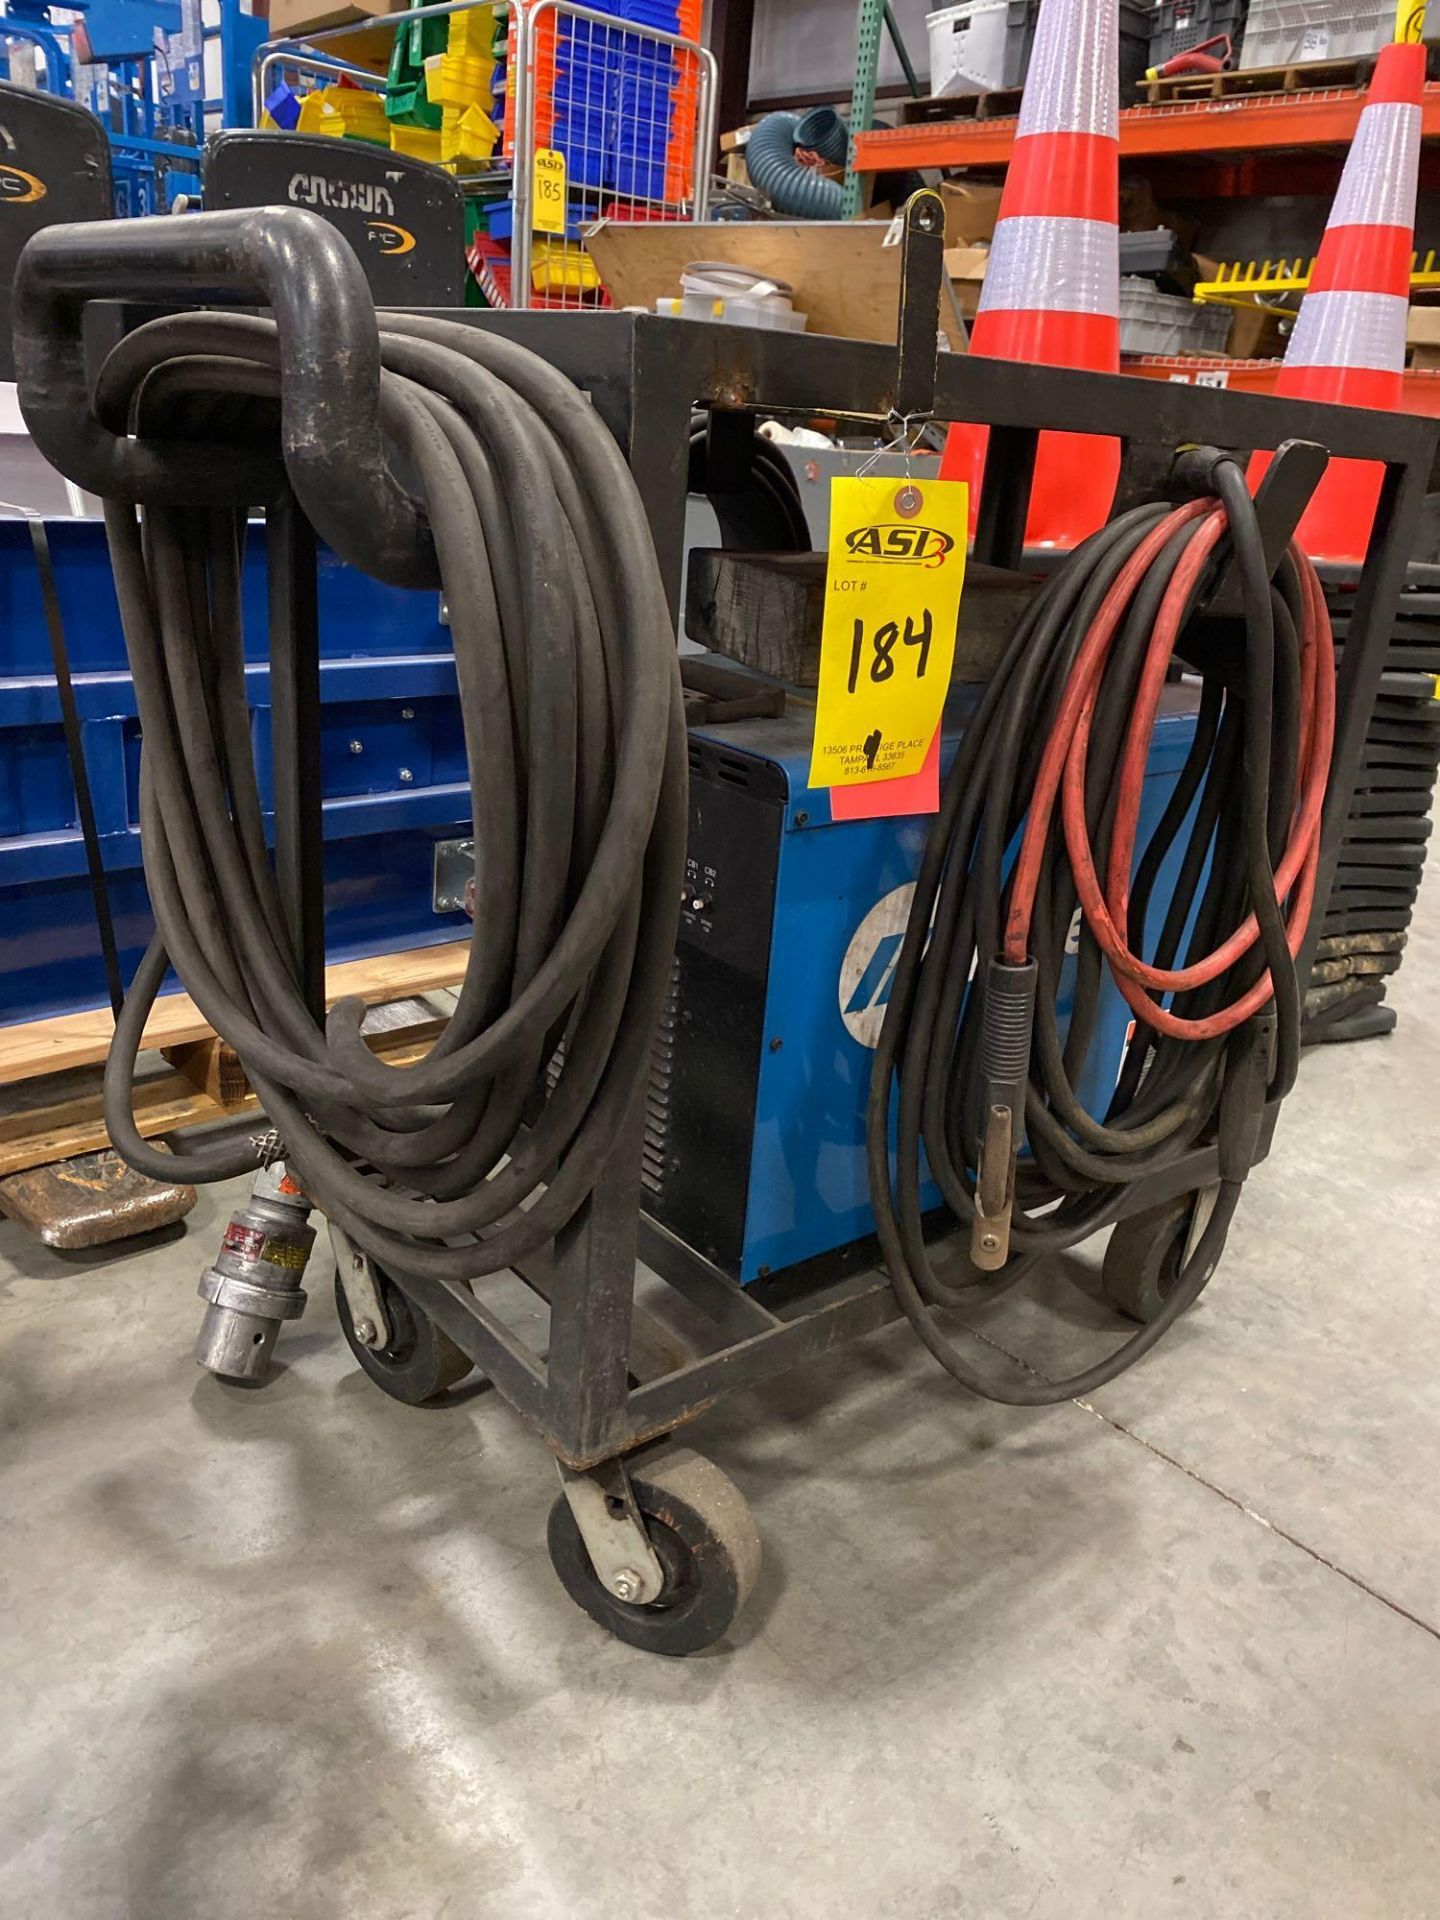 Lot 184 - MILLER XMT 456 WELDER